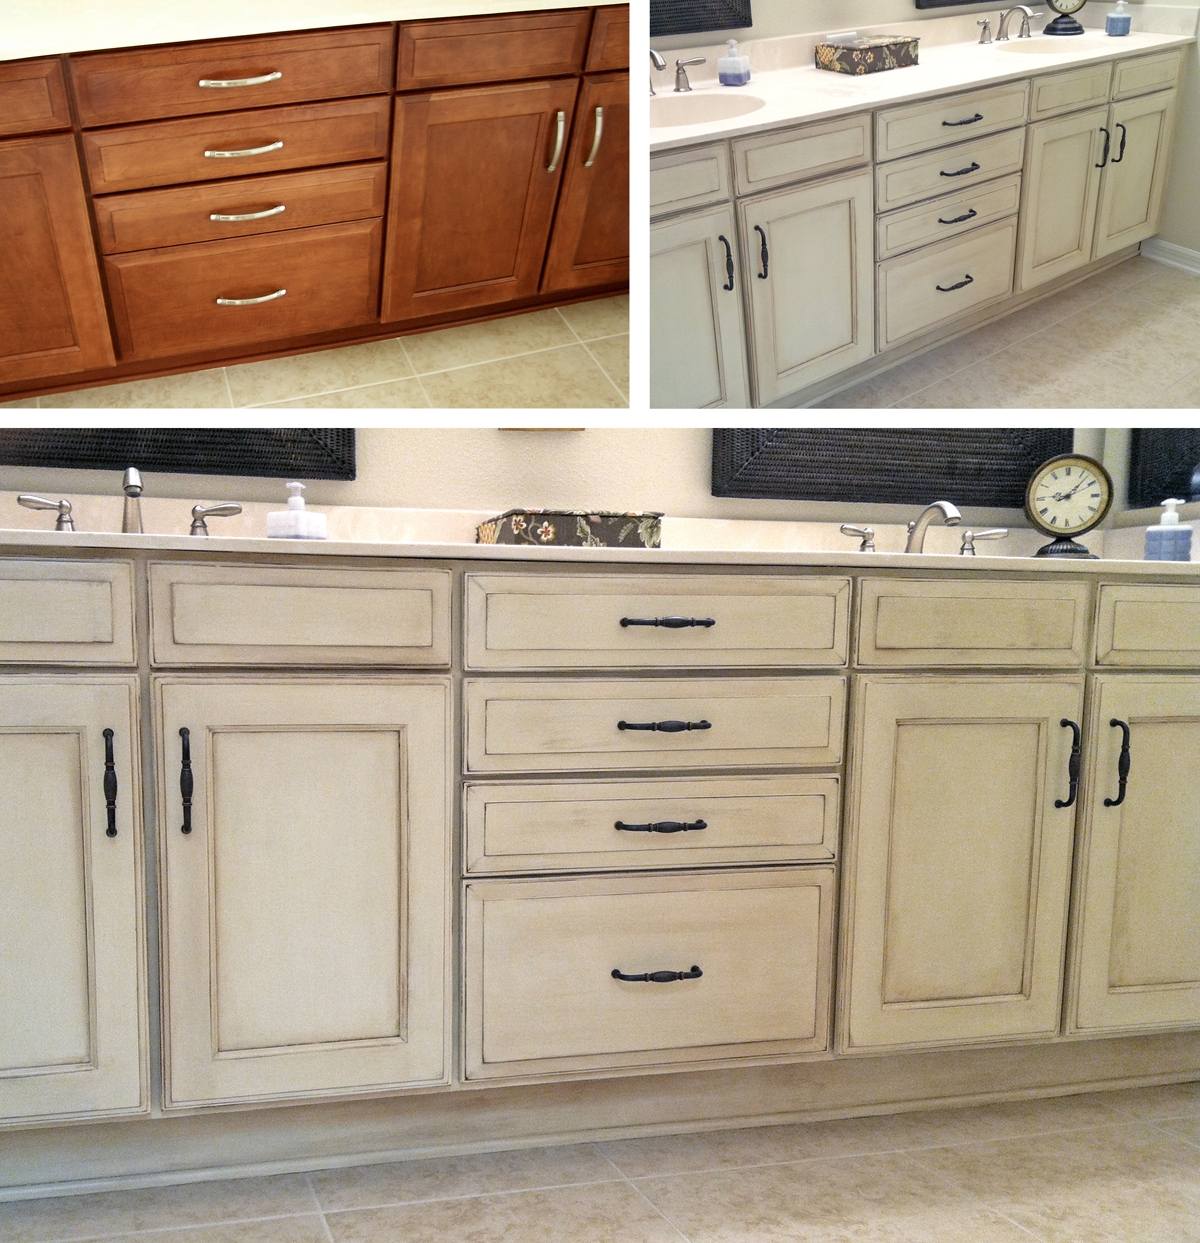 Permalink to Can You Use Kitchen Cabinets In Bathroom